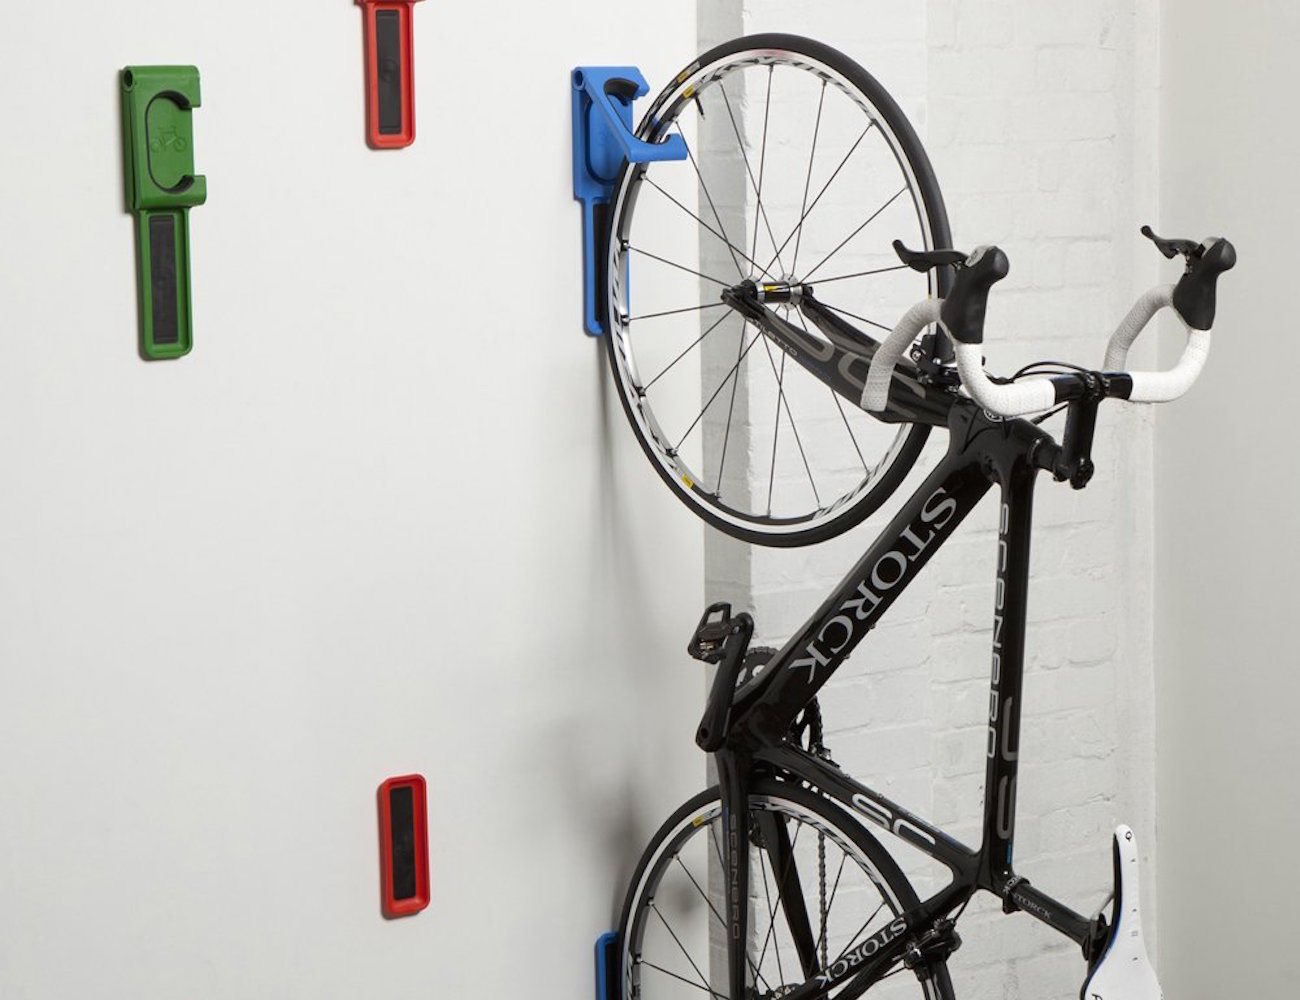 endo fold flat vertical bike storage system by cycloc. Black Bedroom Furniture Sets. Home Design Ideas